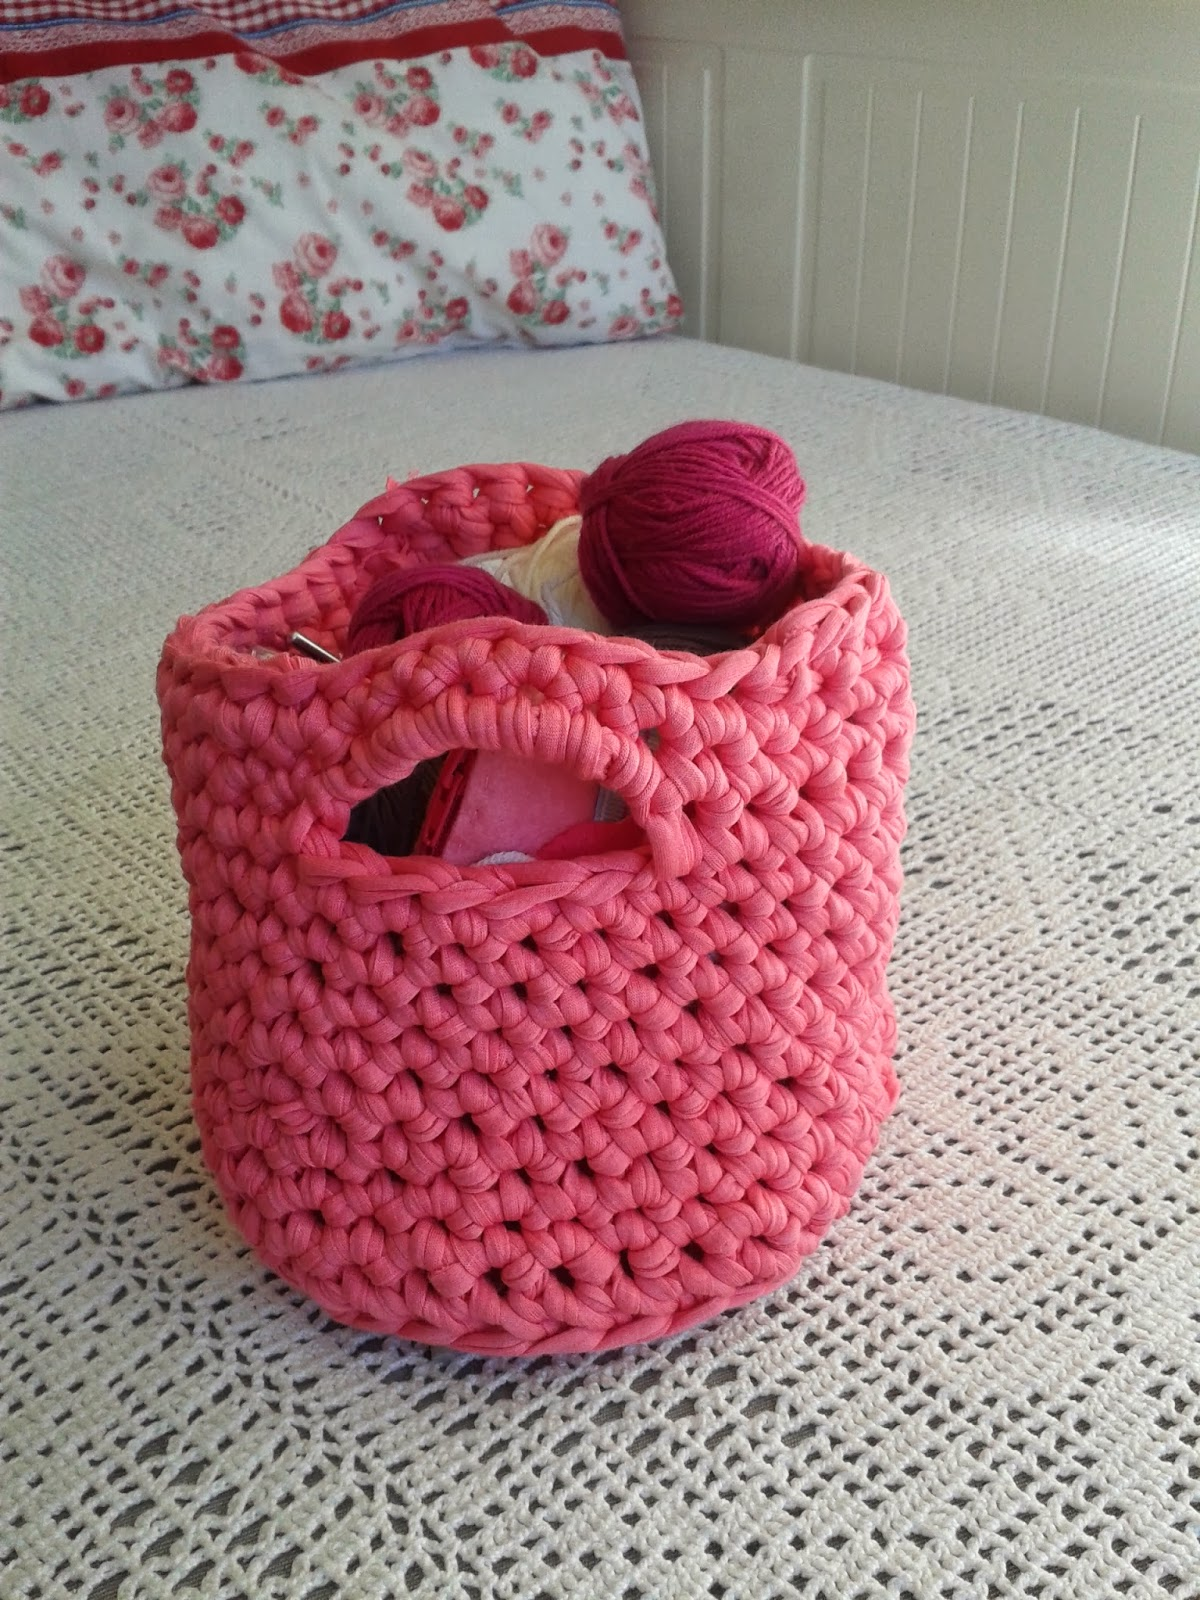 Country Maison t-shirt yarn basket